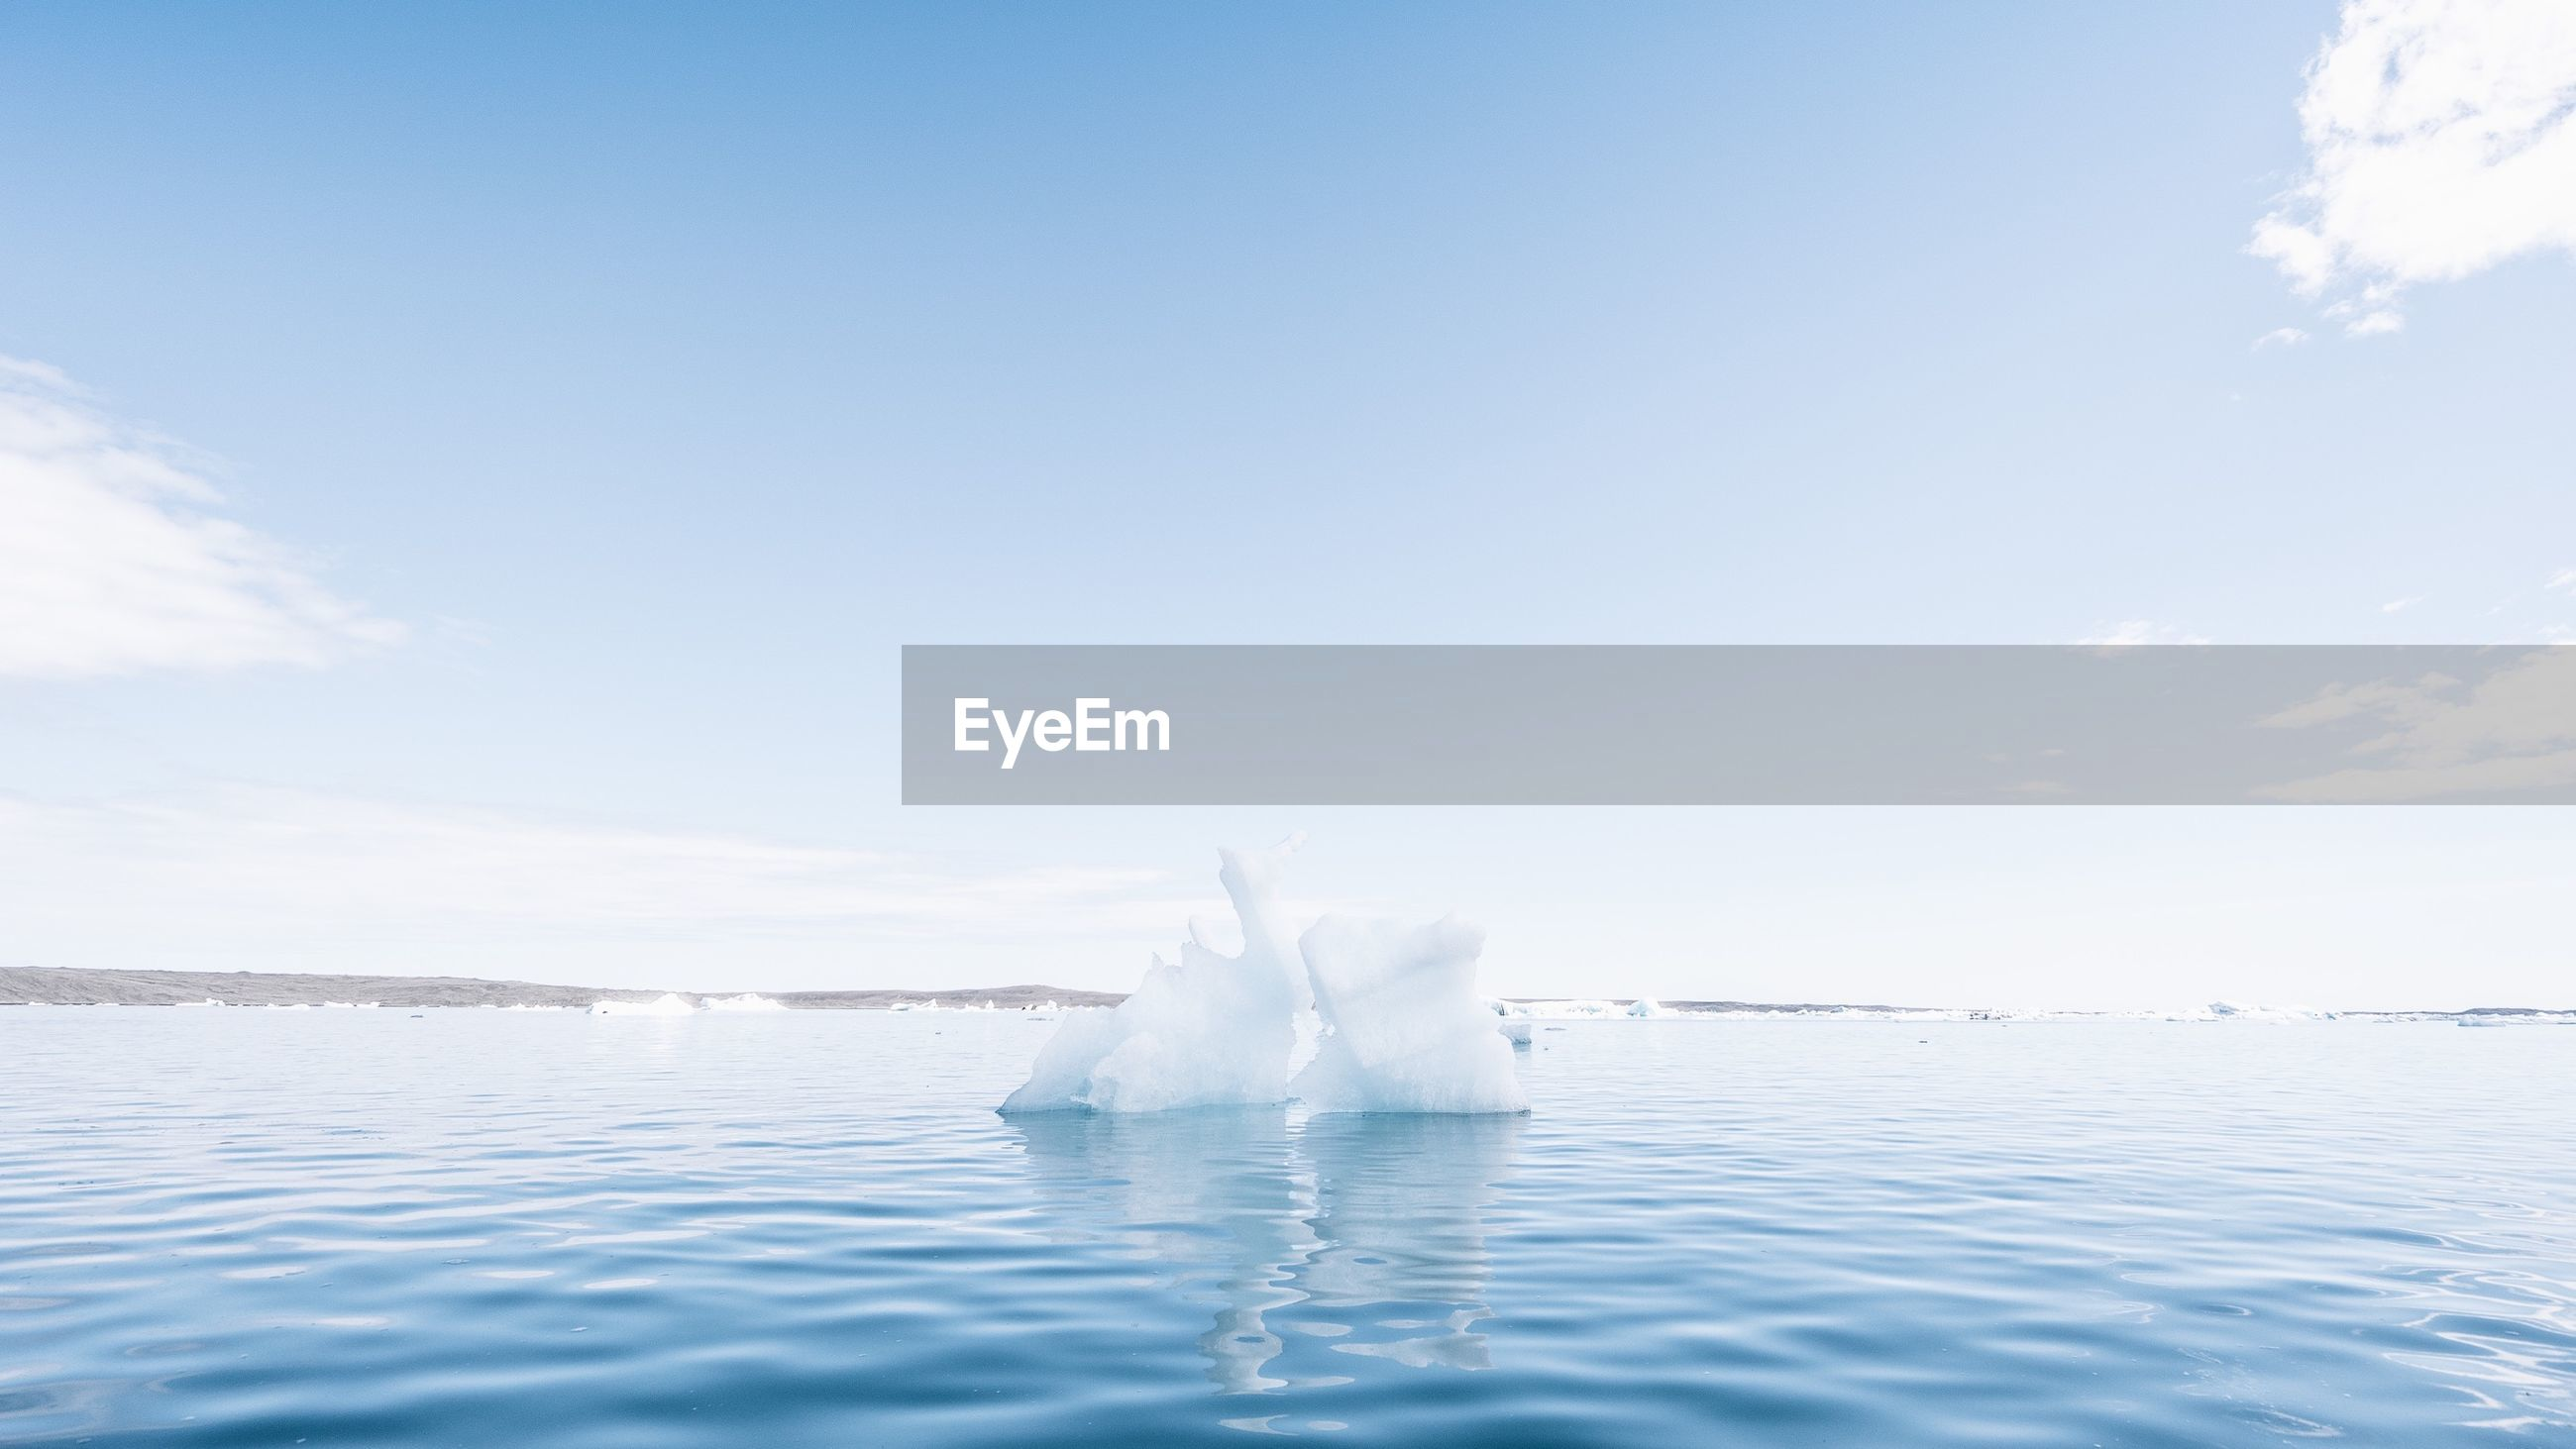 View of iceberg on water surface against sky